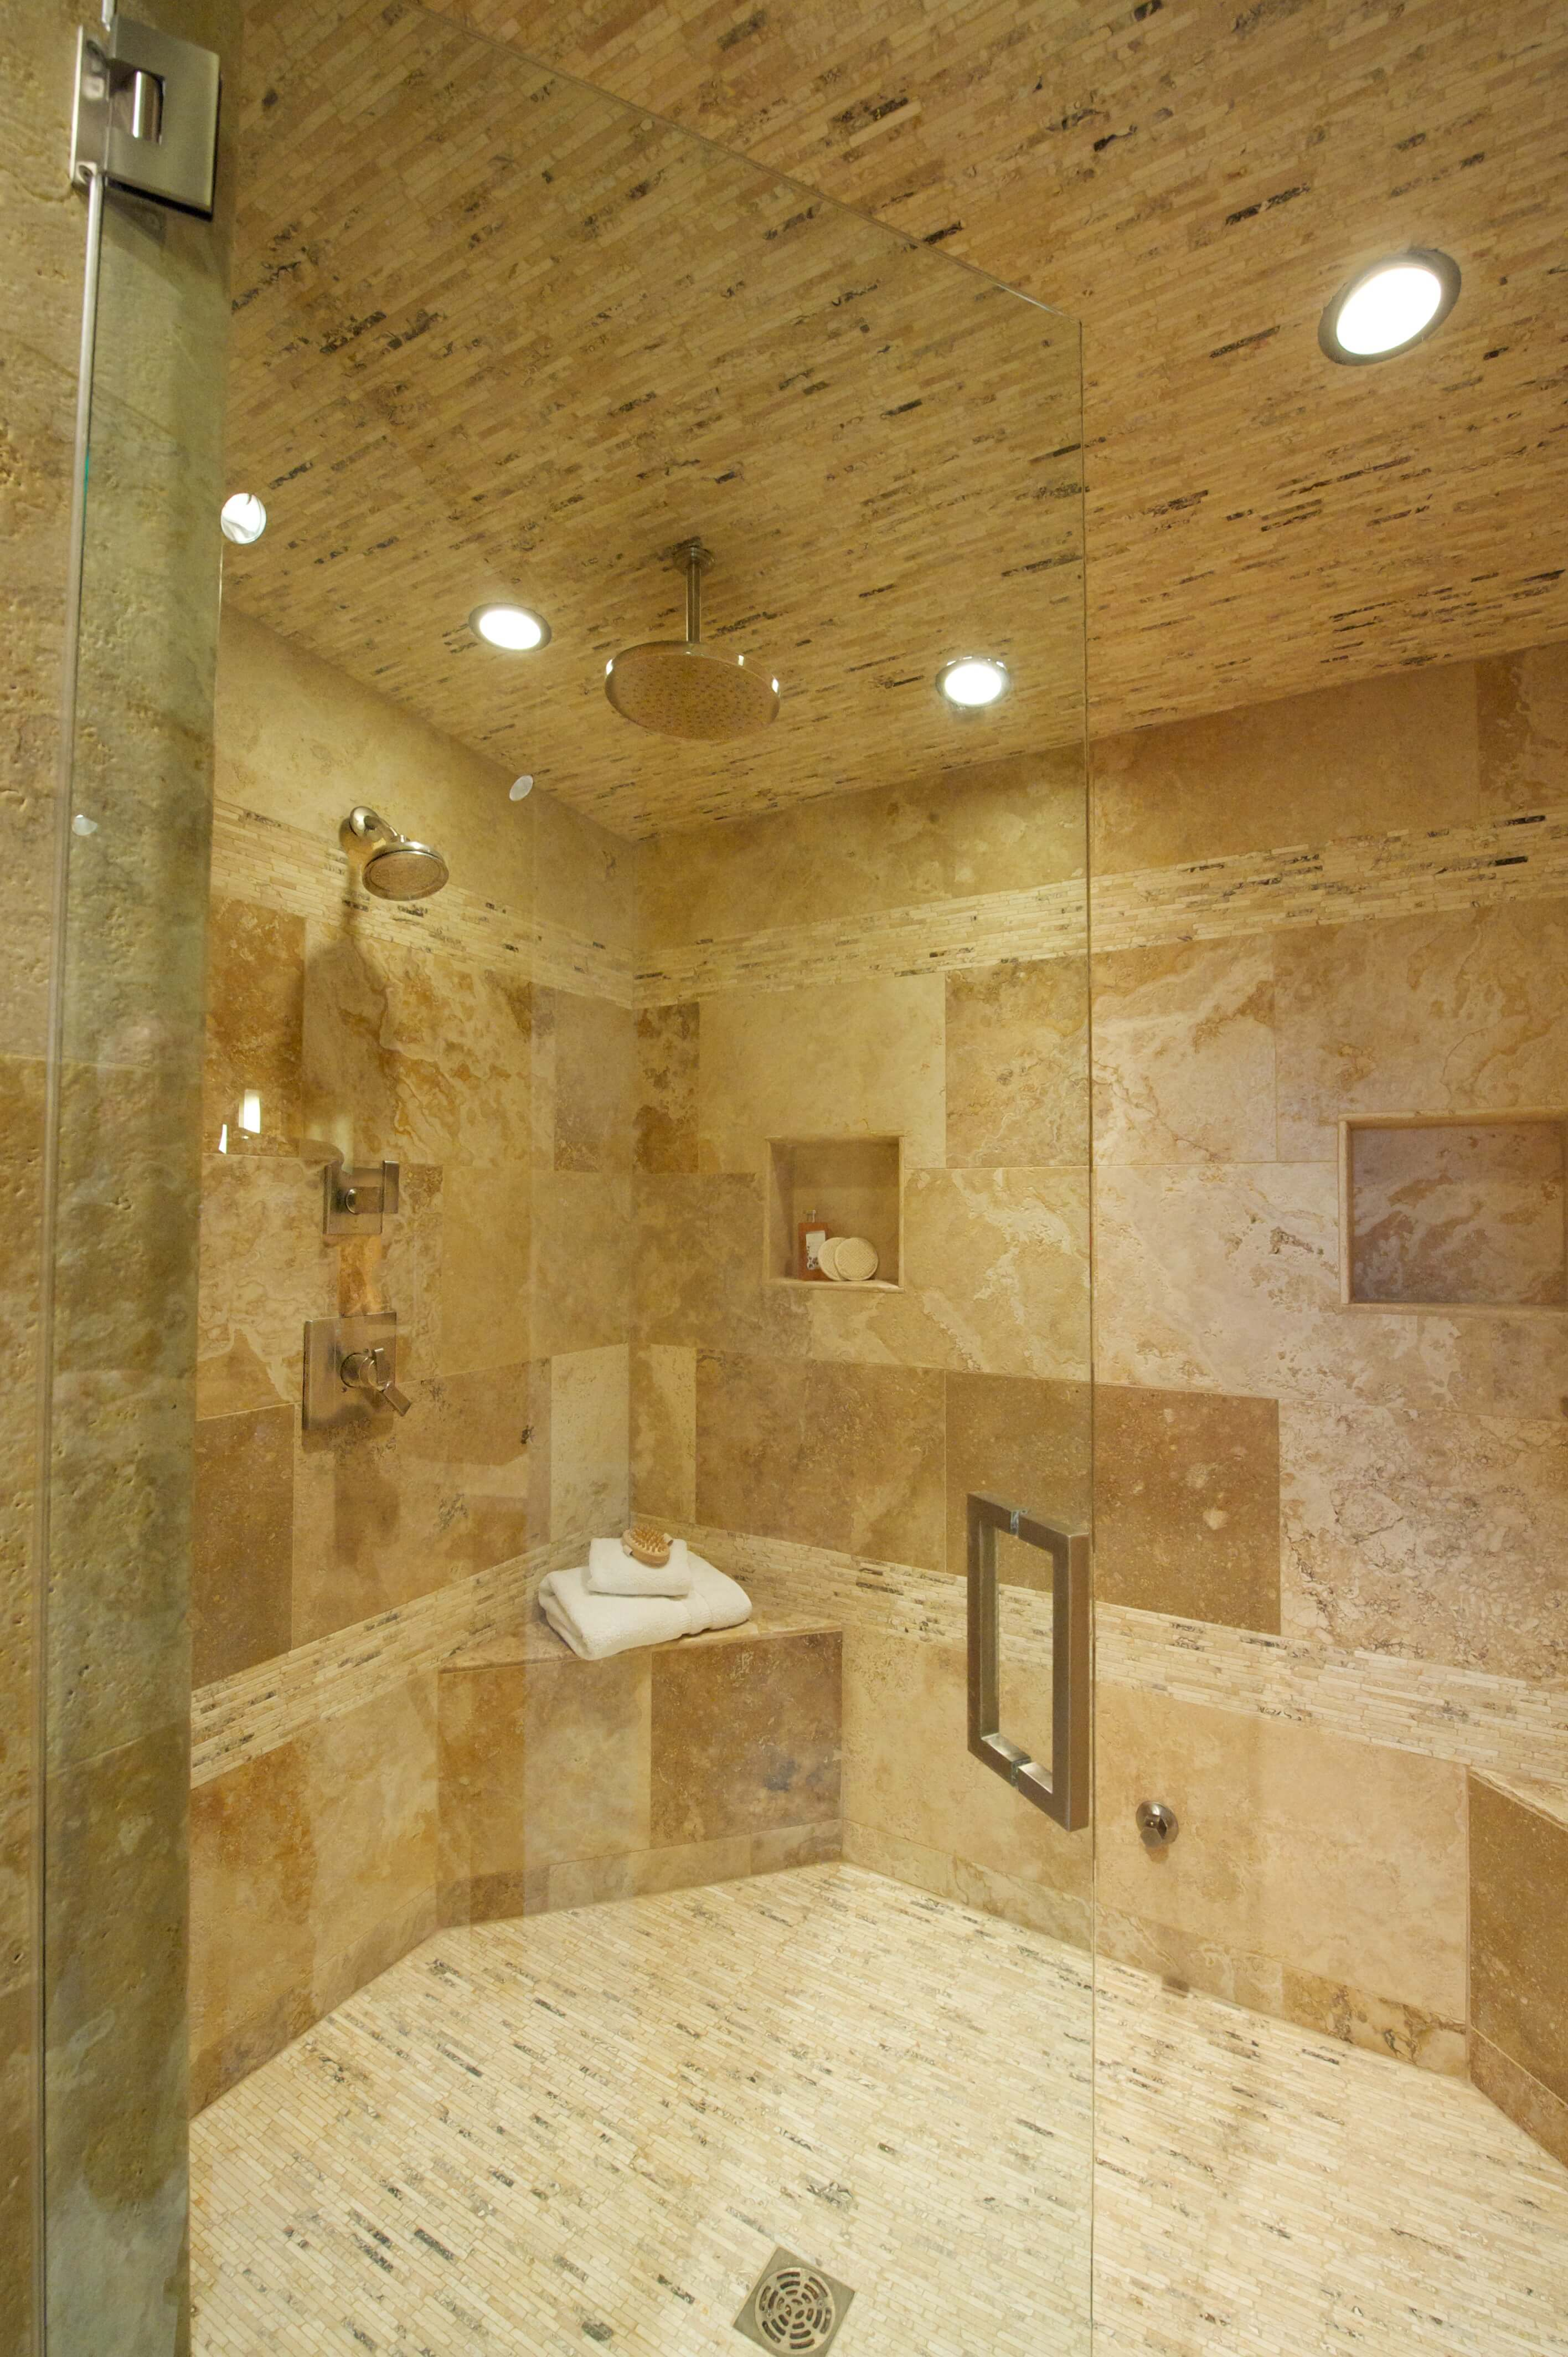 View of the large glass-door shower enclosure done entirely in earth-tone tile as the rest of the bathroom. Recessed lighting and useful shelving built in.